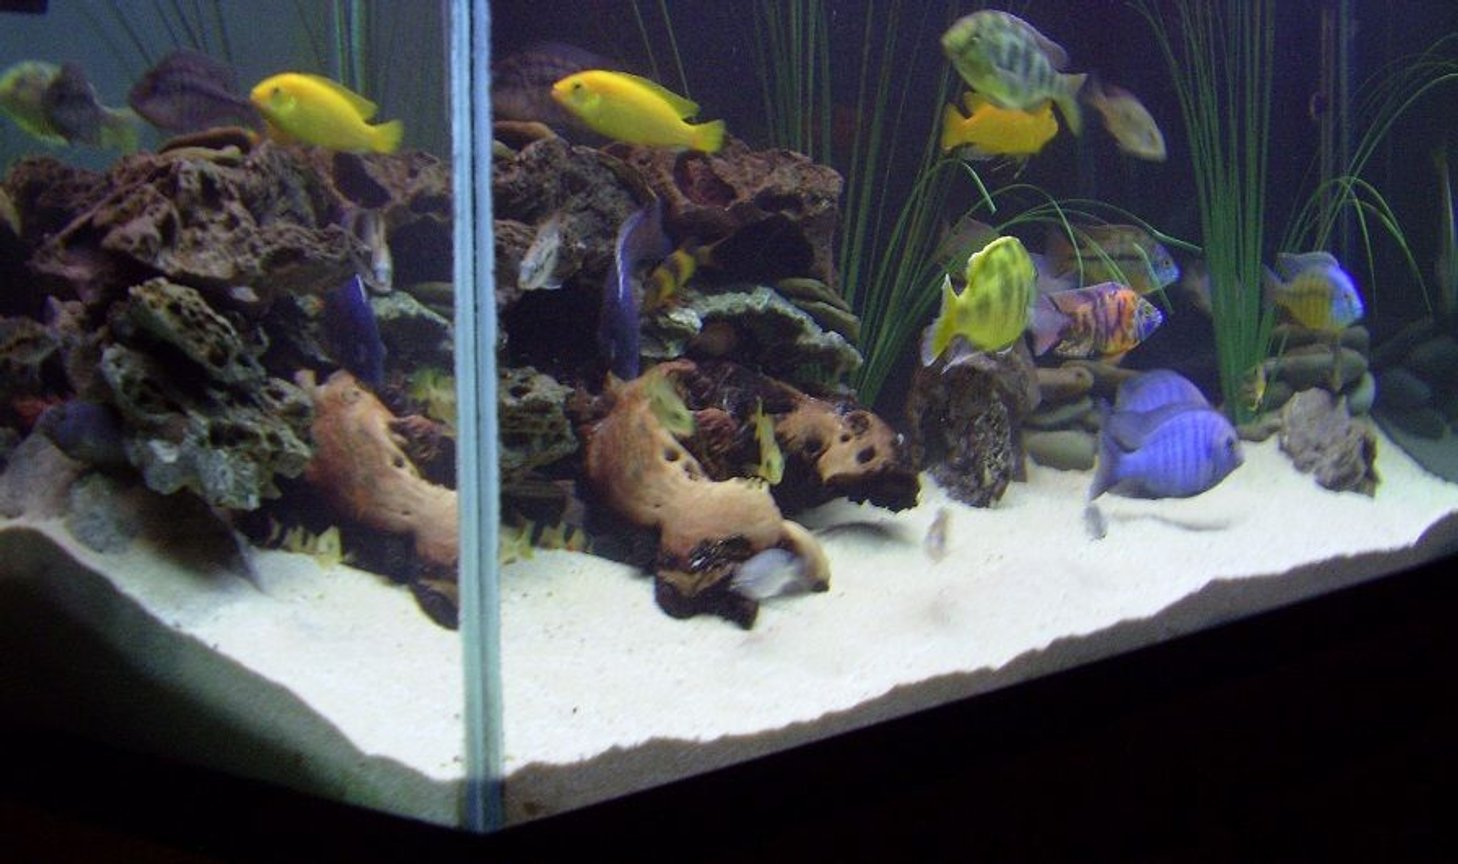 fish tank picture - Mixed African Cichlid aquarium from another angle.